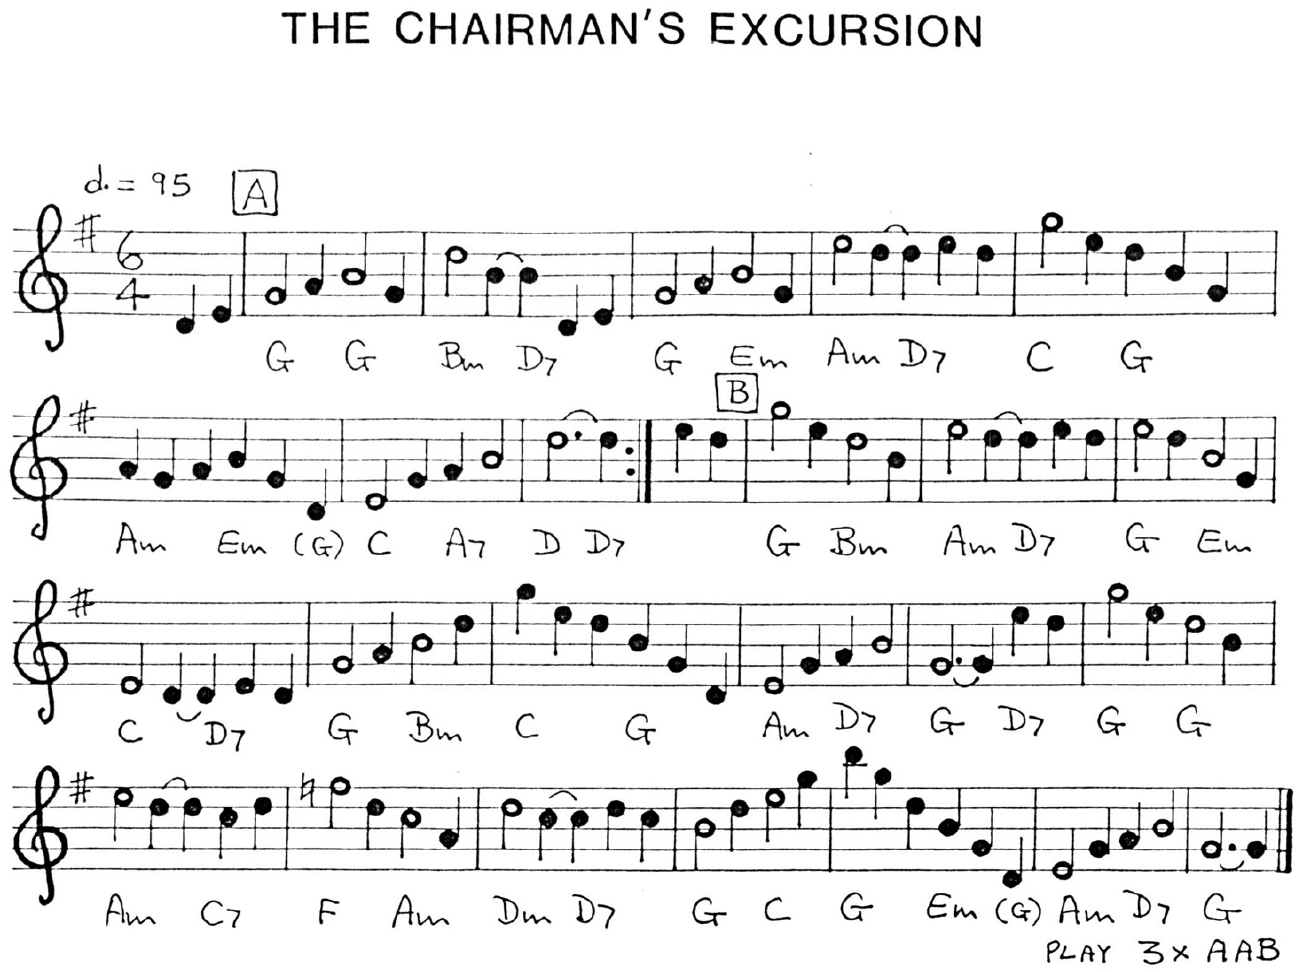 Chairman's Excursion, The